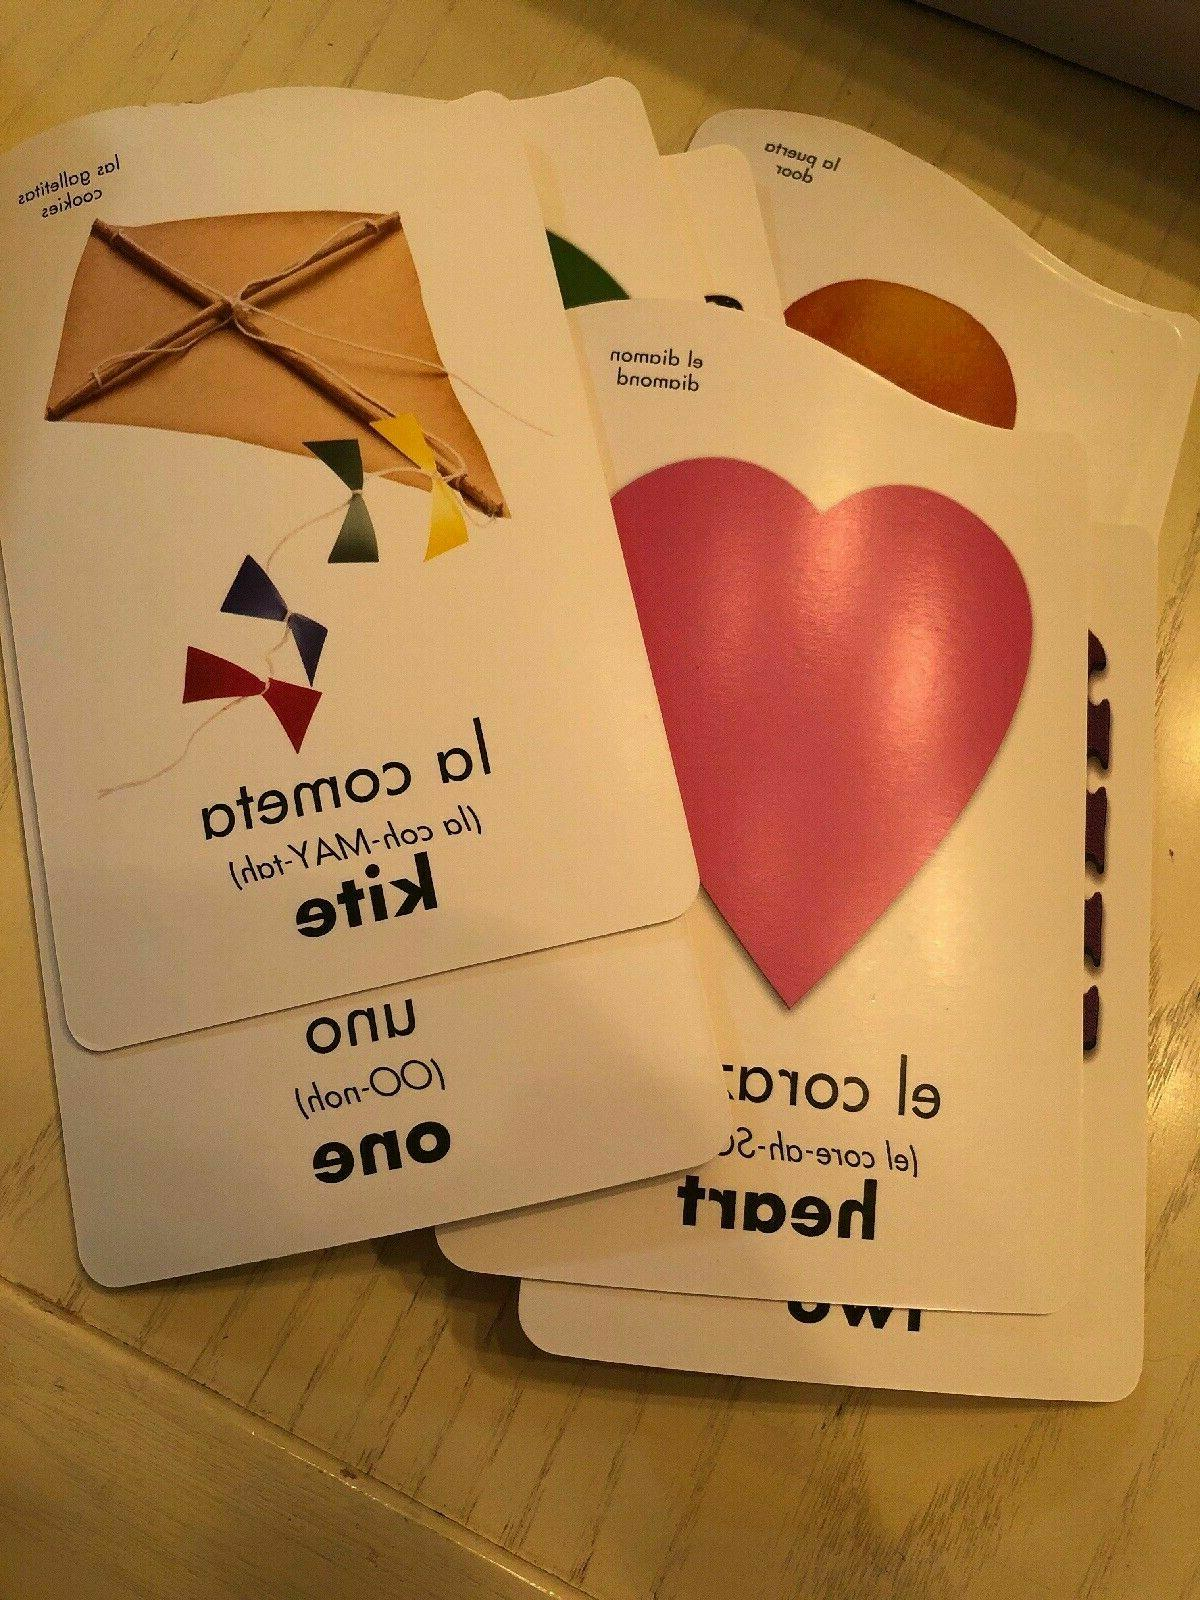 Spanish English Bilingual Cards Cards